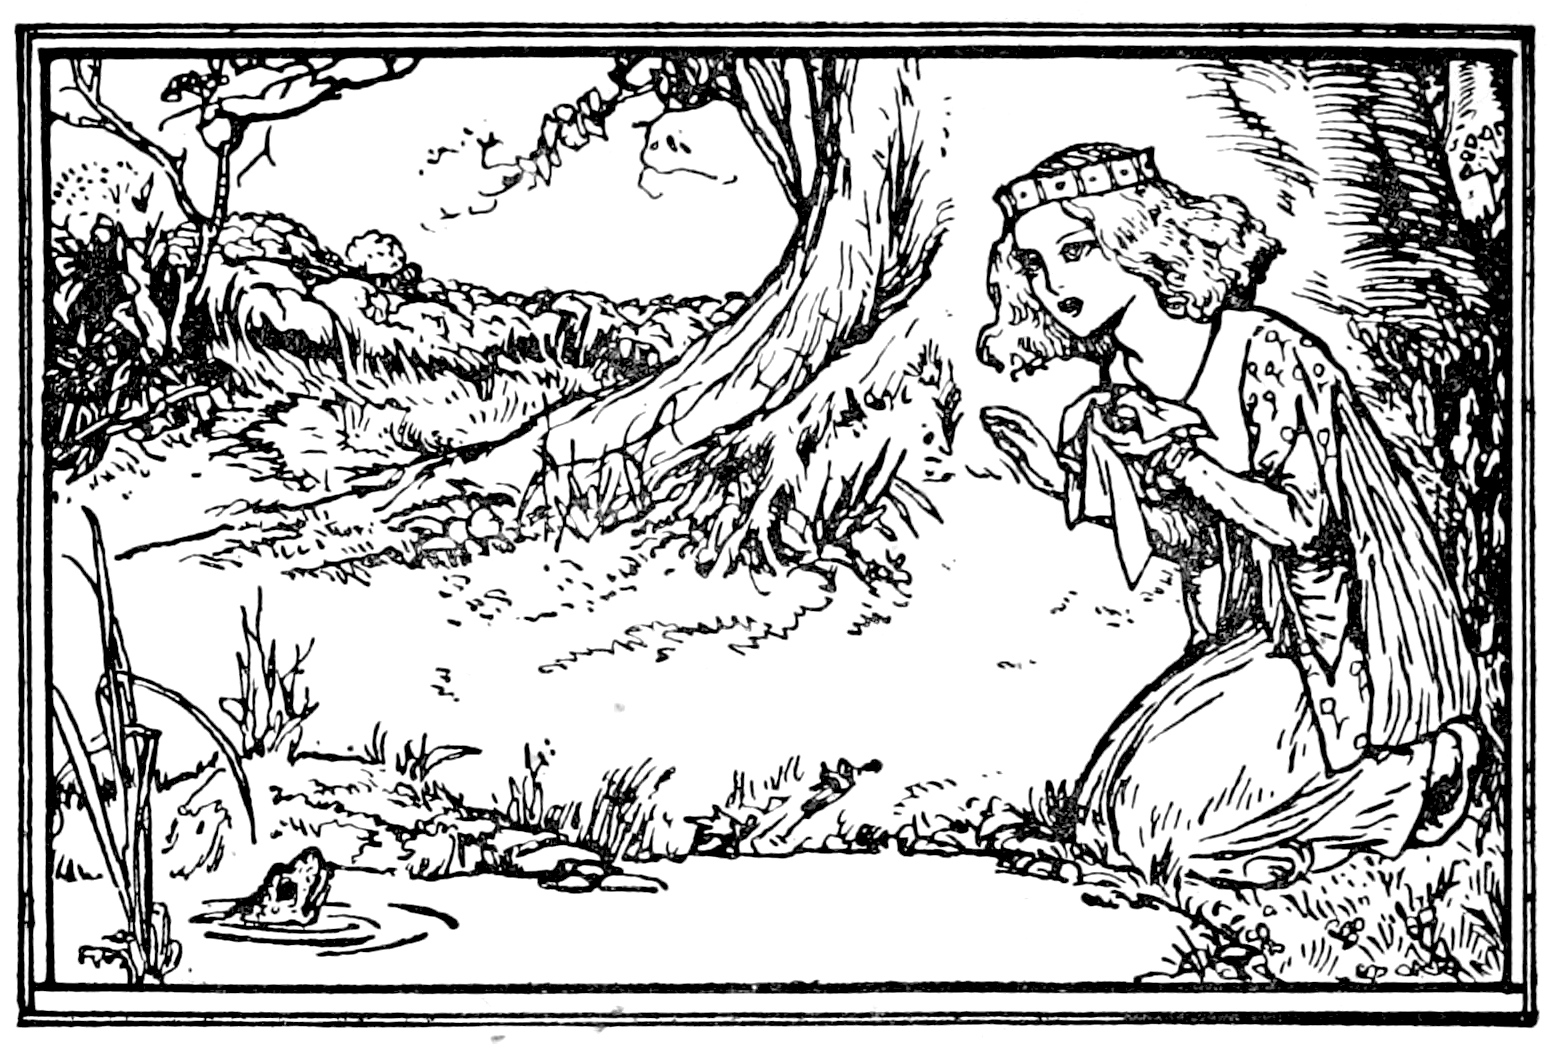 grimm's fairy tales pdf - illustrations